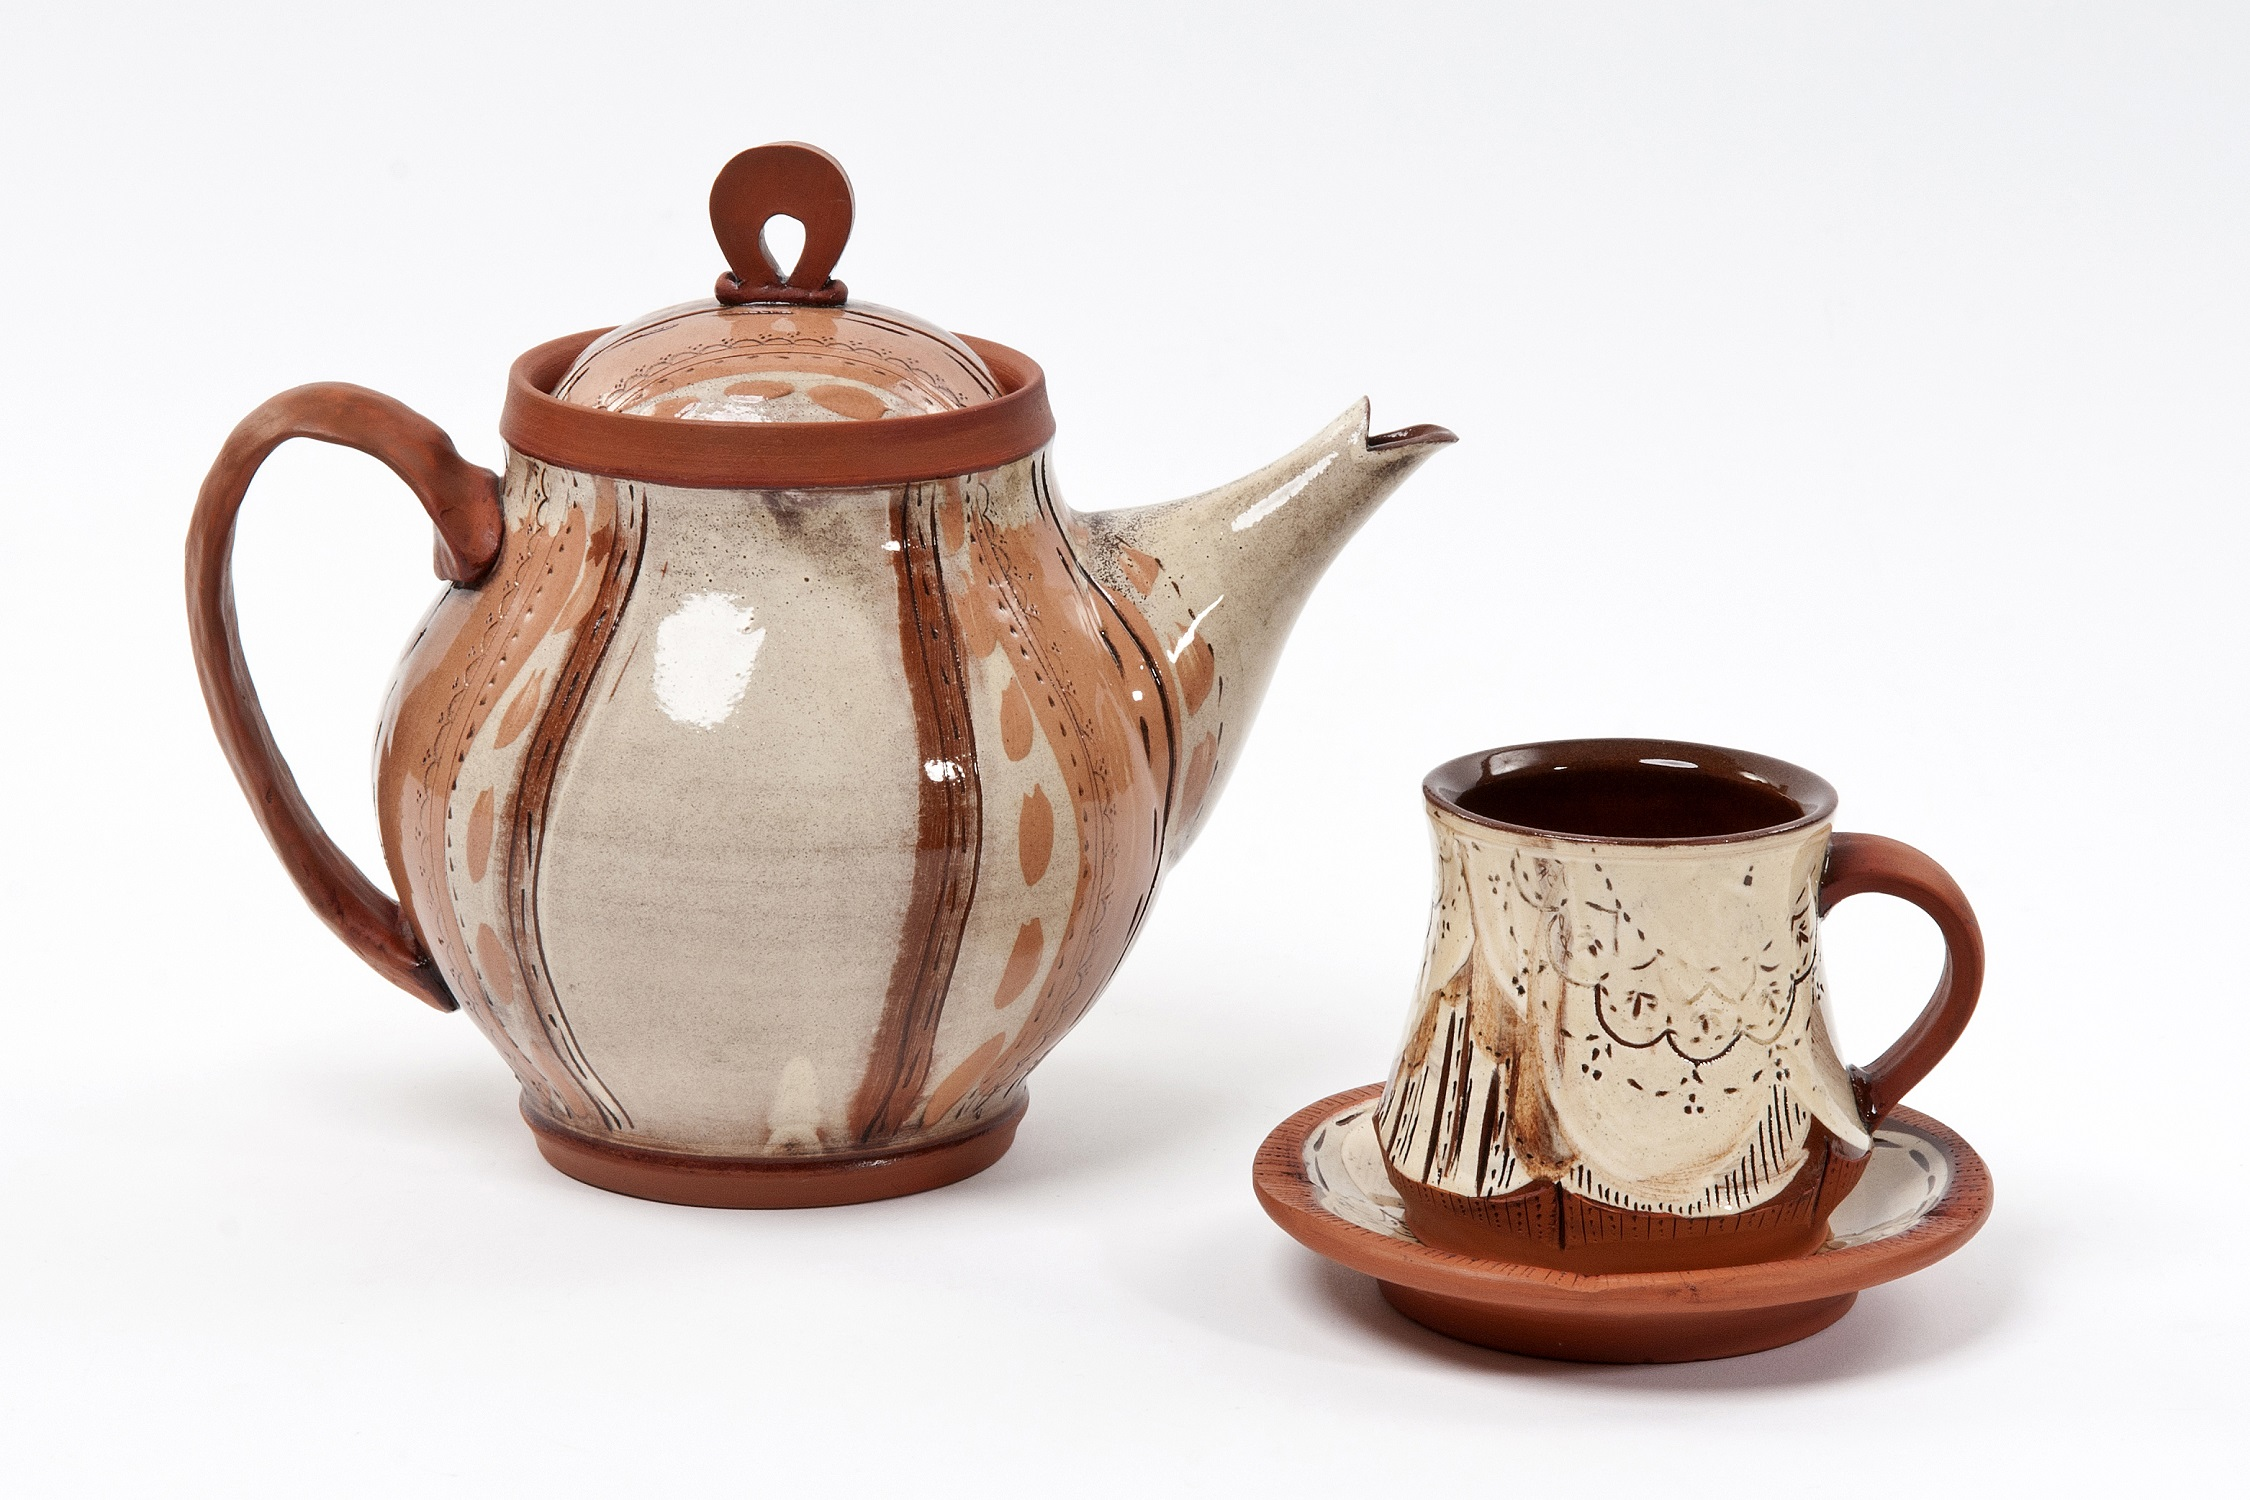 Teapot, Cup and Saucer  earthenware